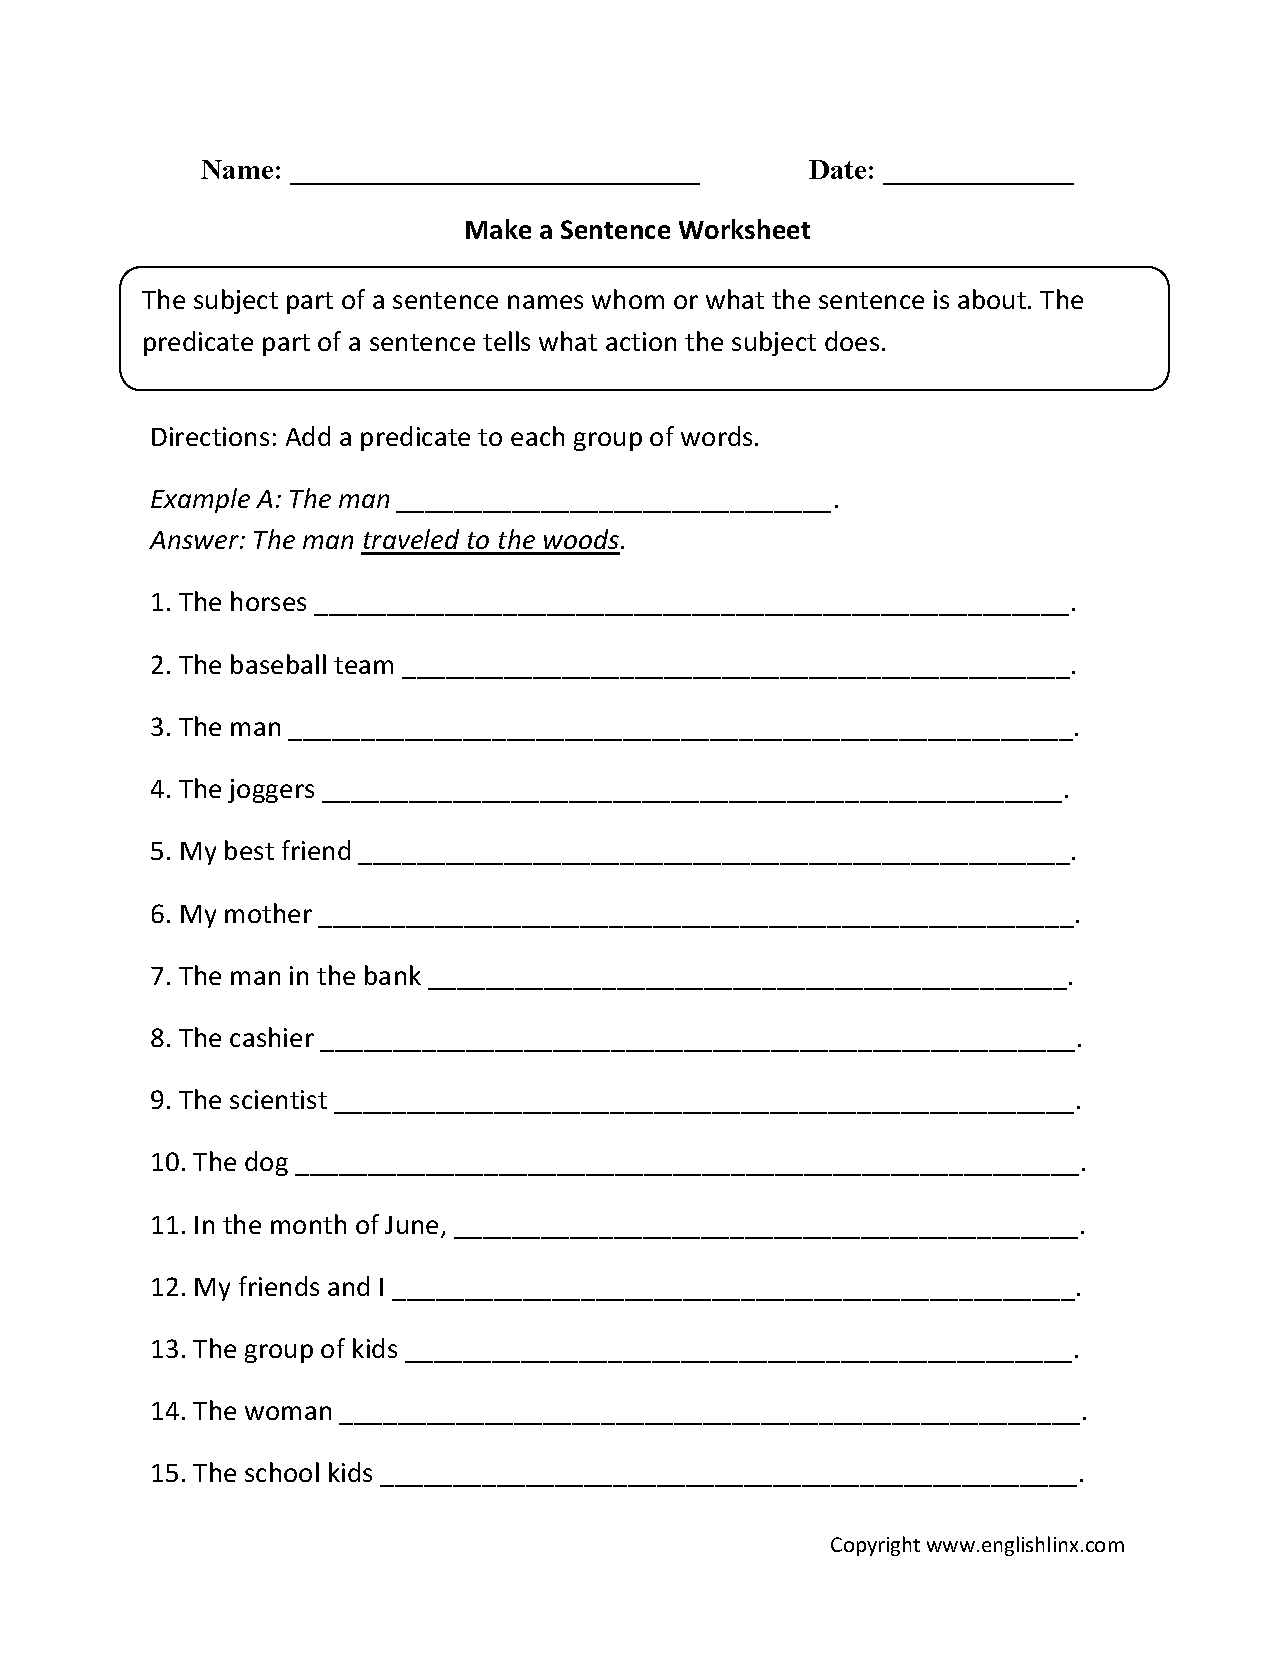 How To Make Worksheet